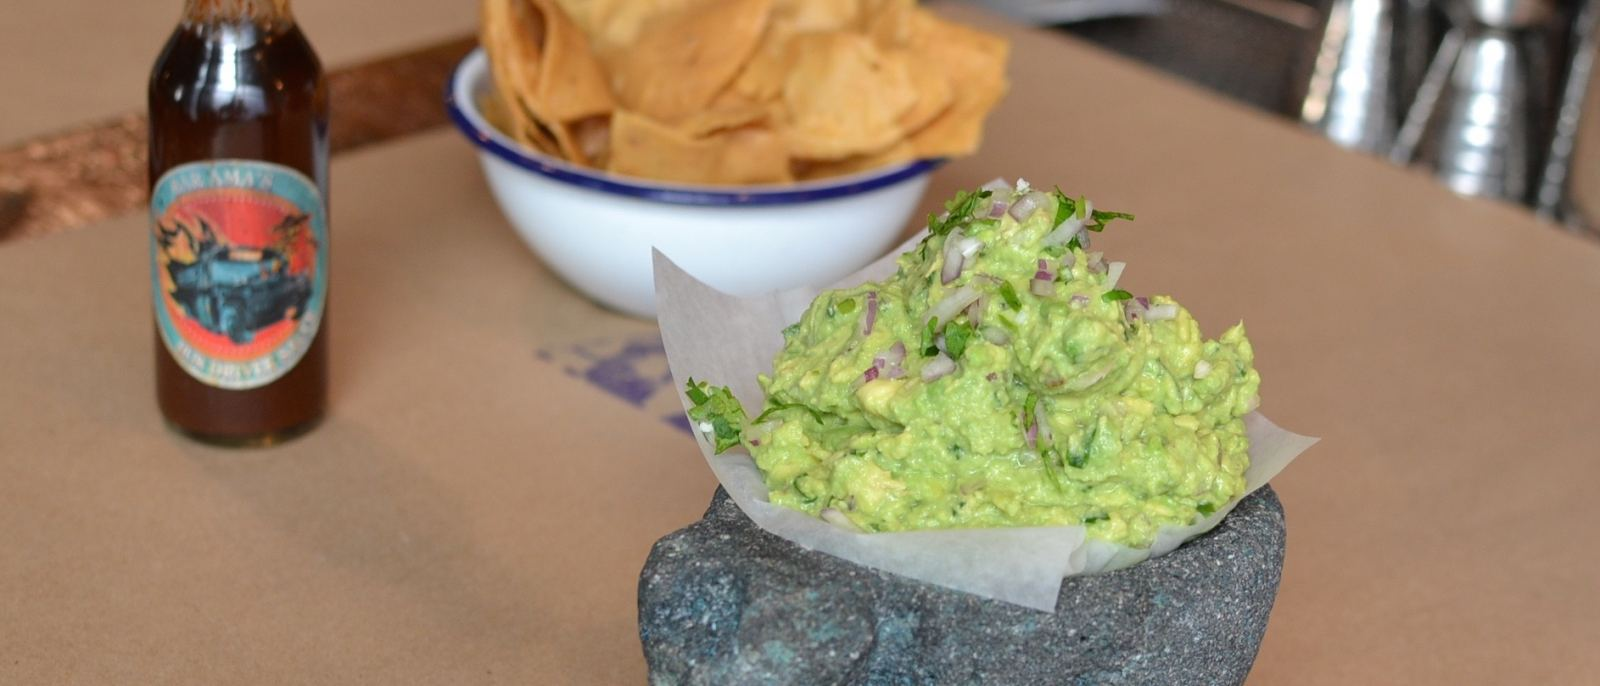 Made-To-Order Guacamole at Bar Ama